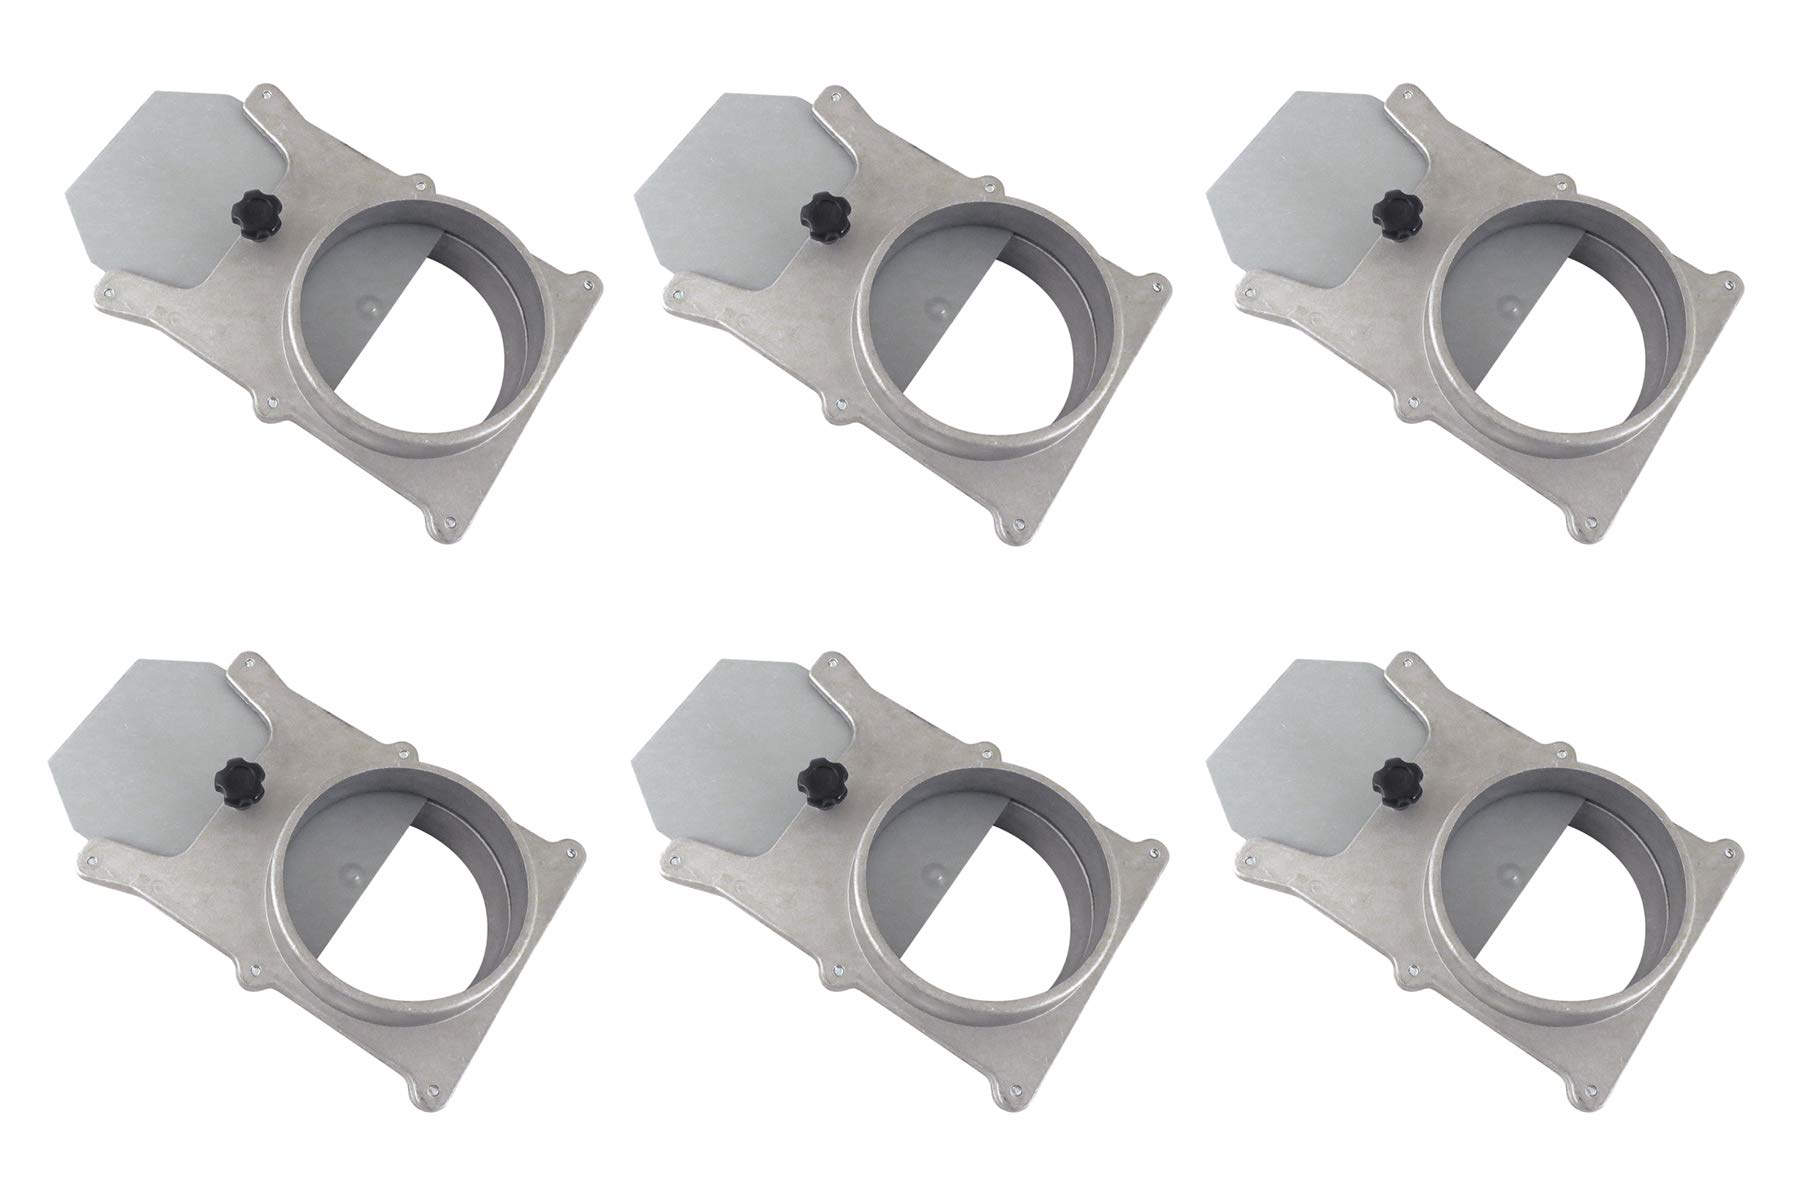 Taytools 465388 Set of 6 each 4'' OD Blast Gates Self Cleaning No Clog Aluminum for Dust Collection System by Taytools